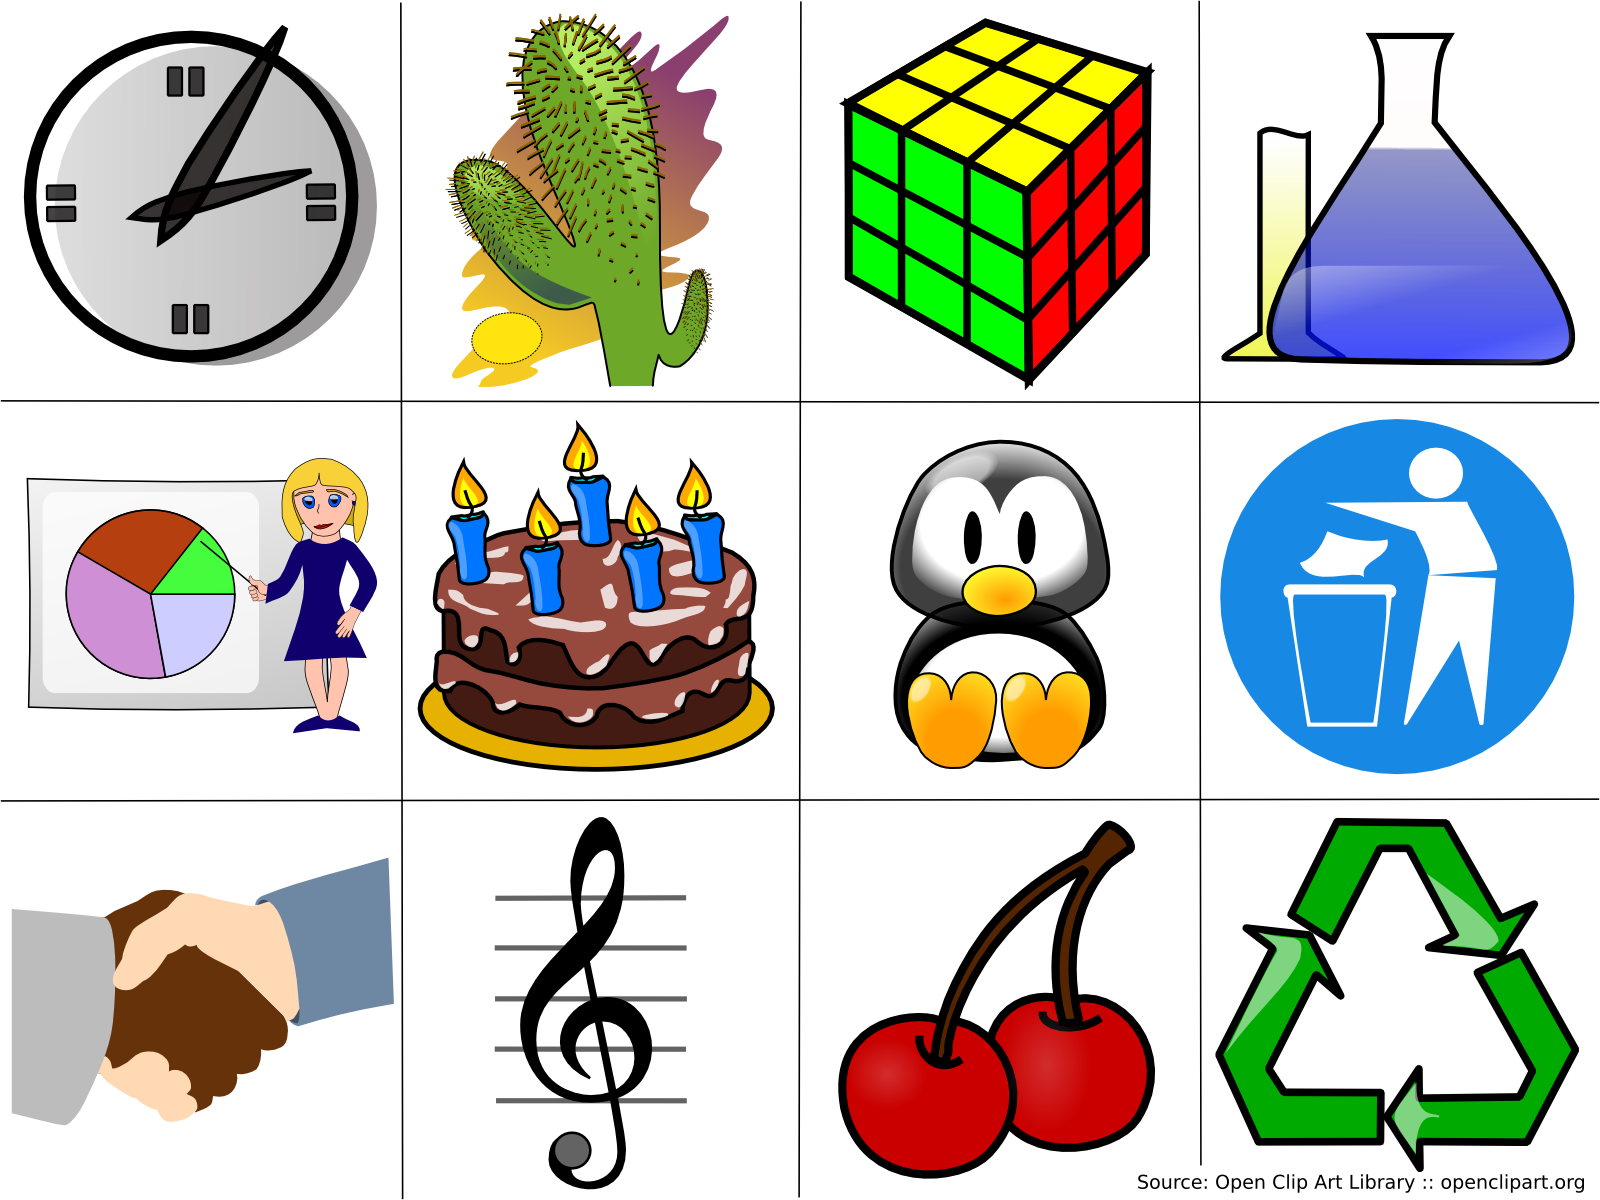 Grant elementary images clip. Advent clipart meaning